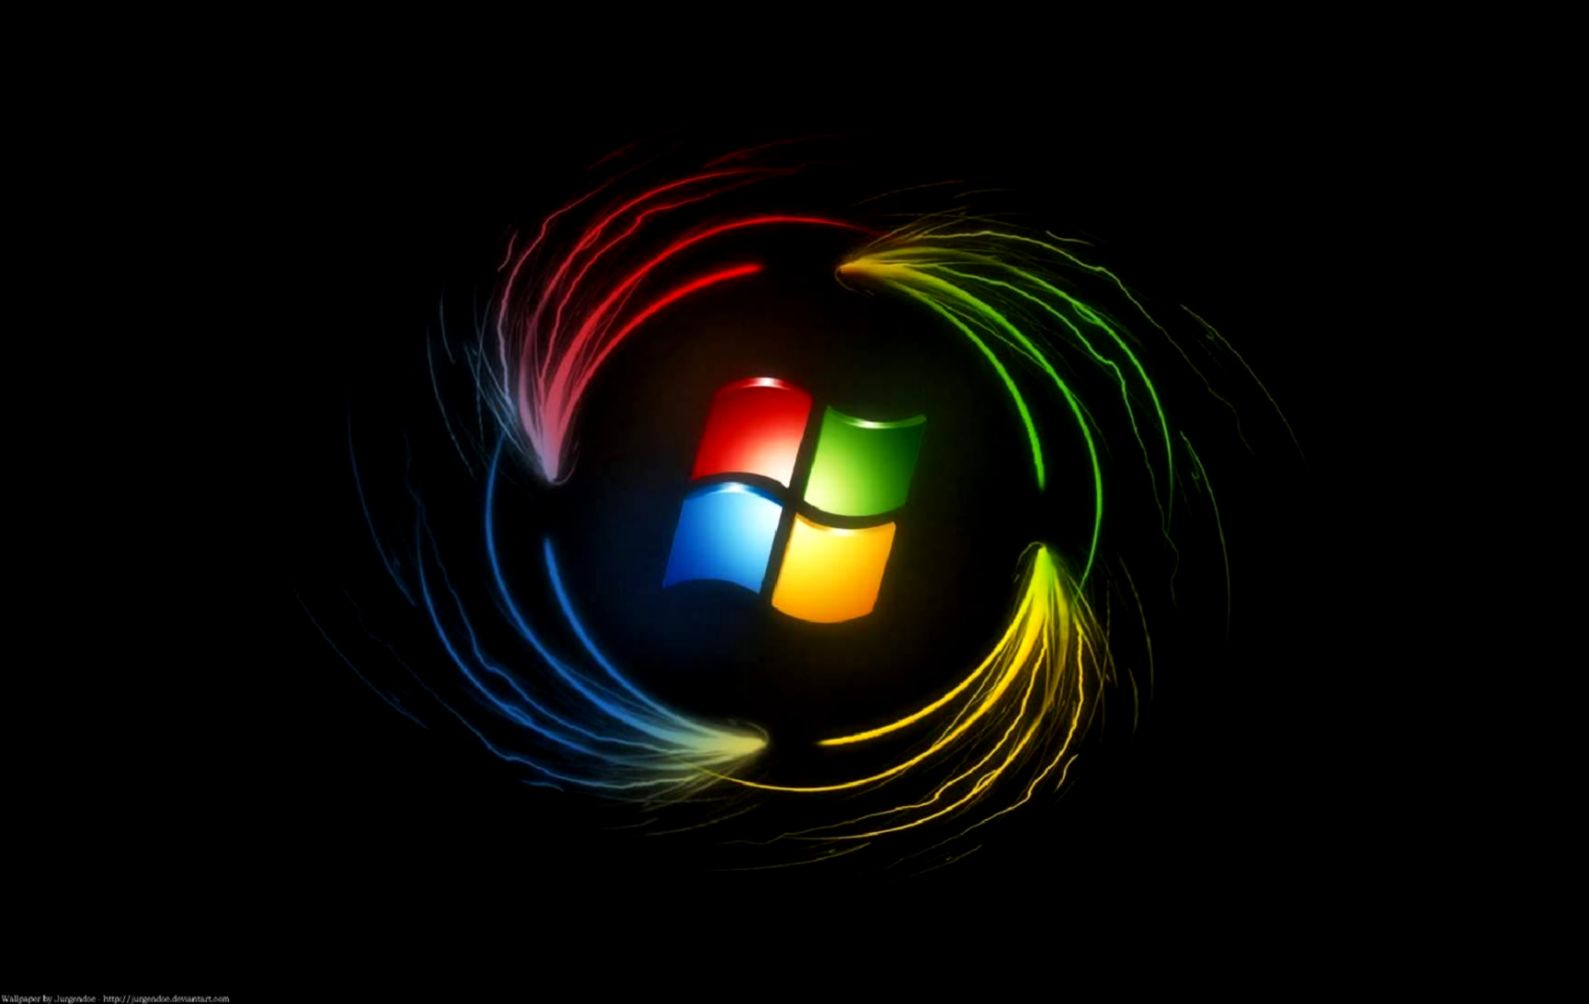 Microsoft Wallpapers Themes Best Background Wallpaper 1589x1004